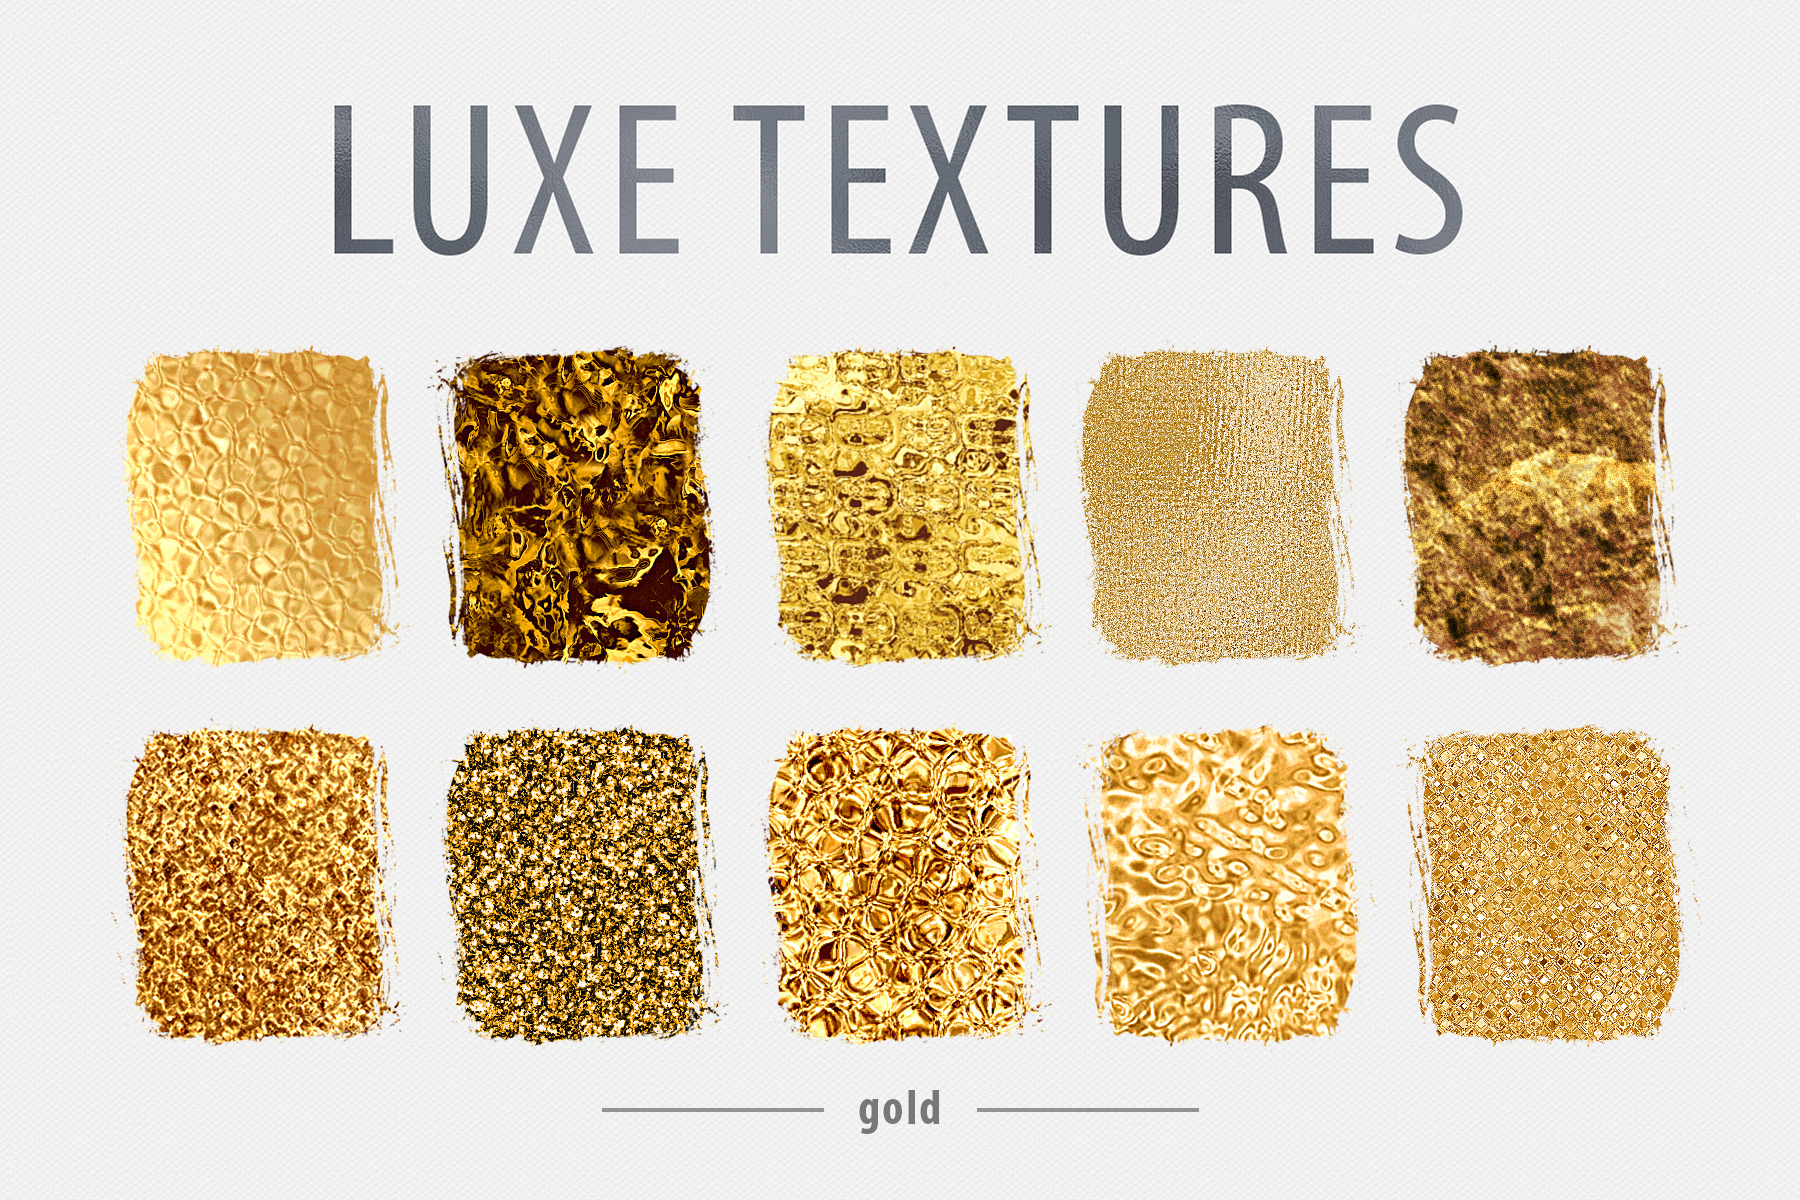 Luxe - 200 Textures and Patterns - Foil, Glitter, Marble example image 8